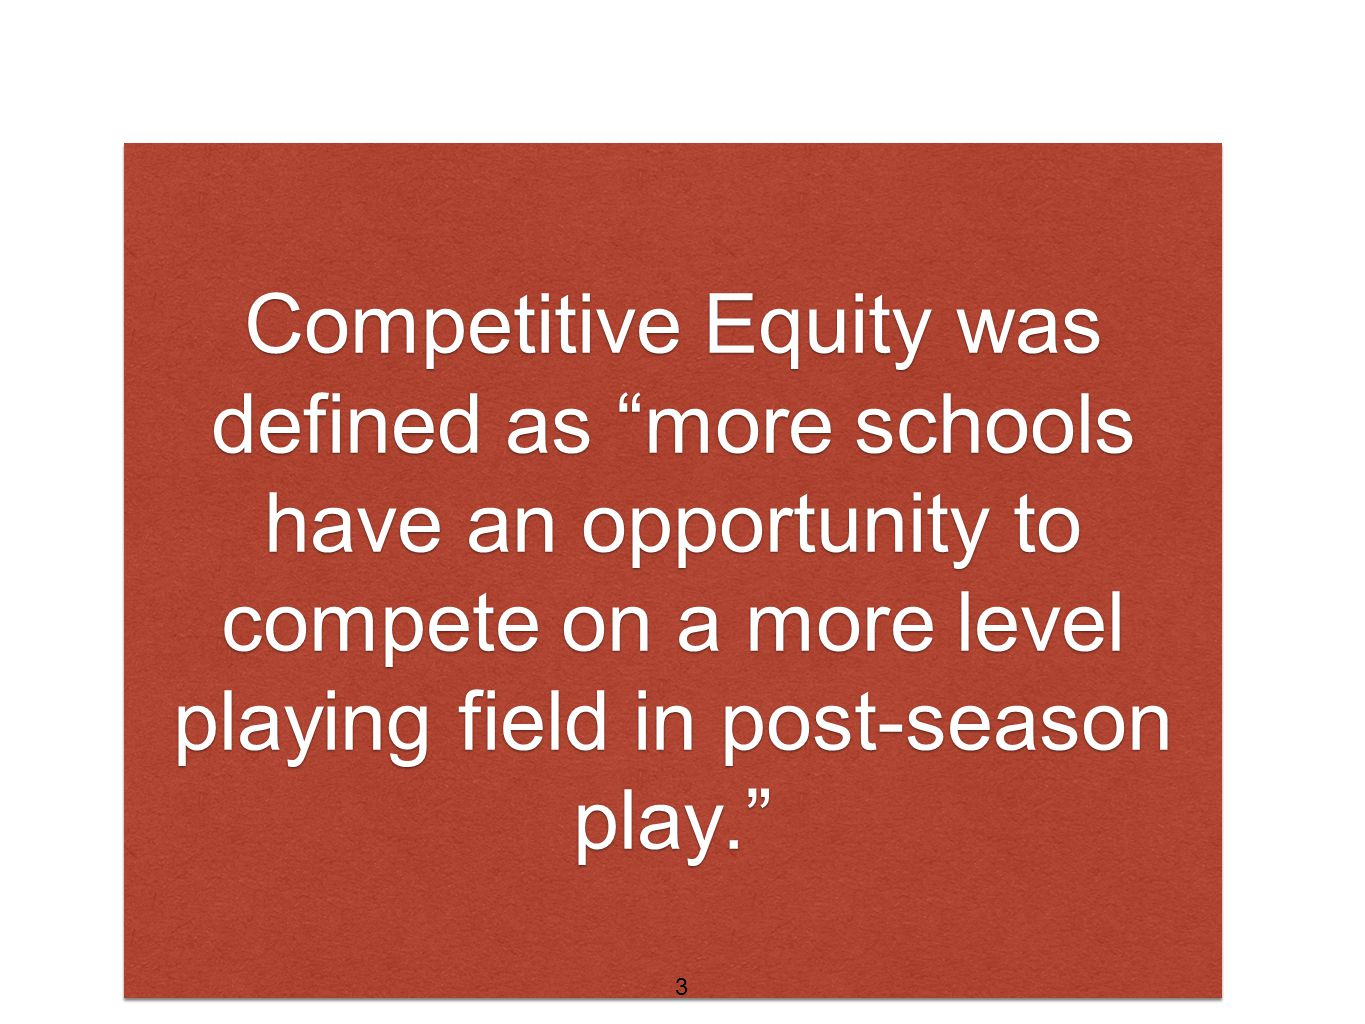 Competitive Equity was defined as more schools have an opportunity to compete on a more level playing field in post-season play. 3